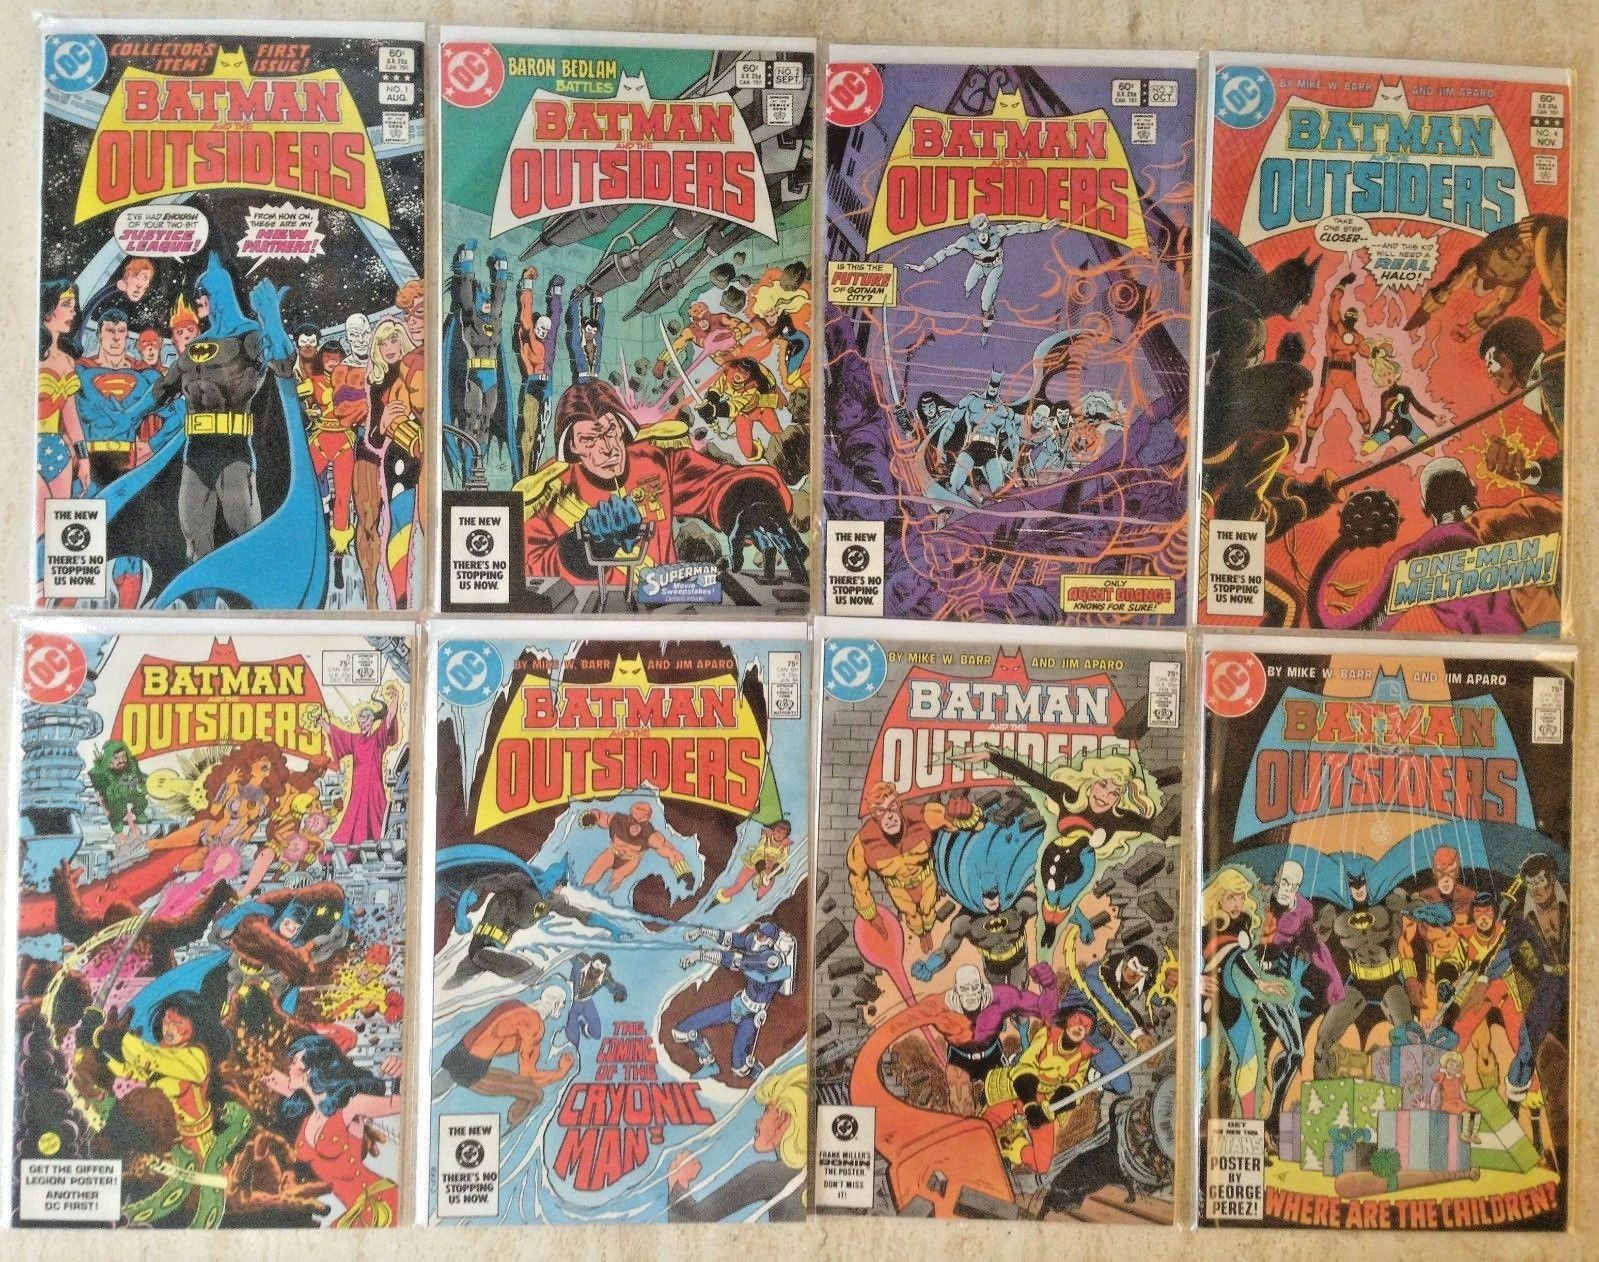 BATMAN AND THE OUTSIDERS 1-46,THE OUTSIDERS 1-28, OUTSIDERS 1-24 | 103 TOTAL